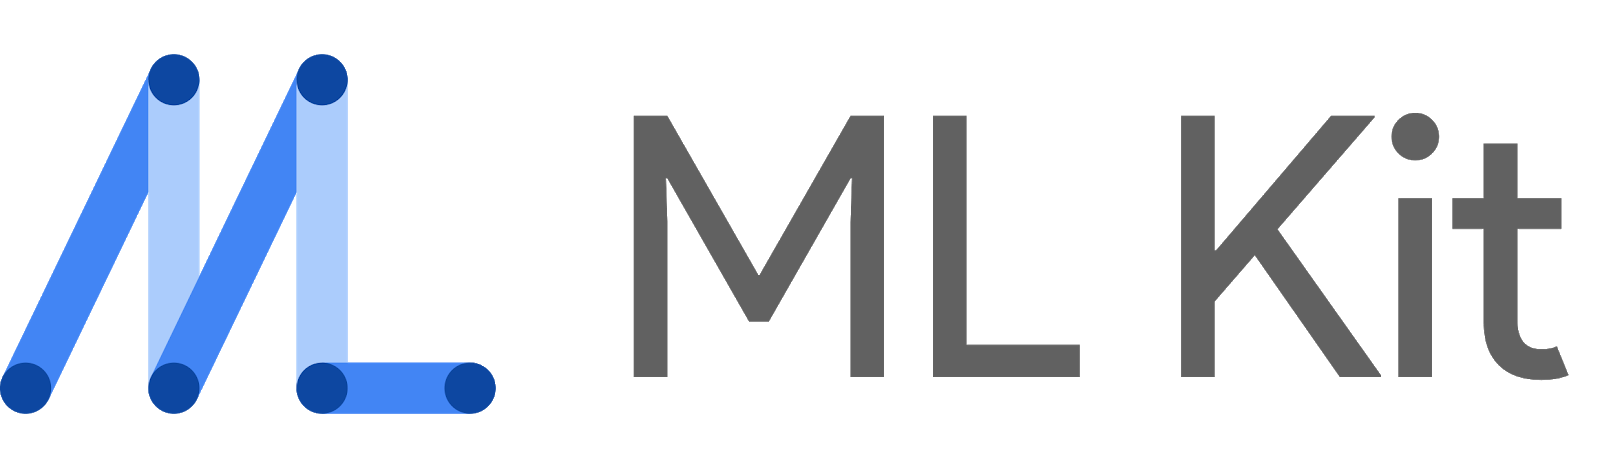 ml-kit-logo.png